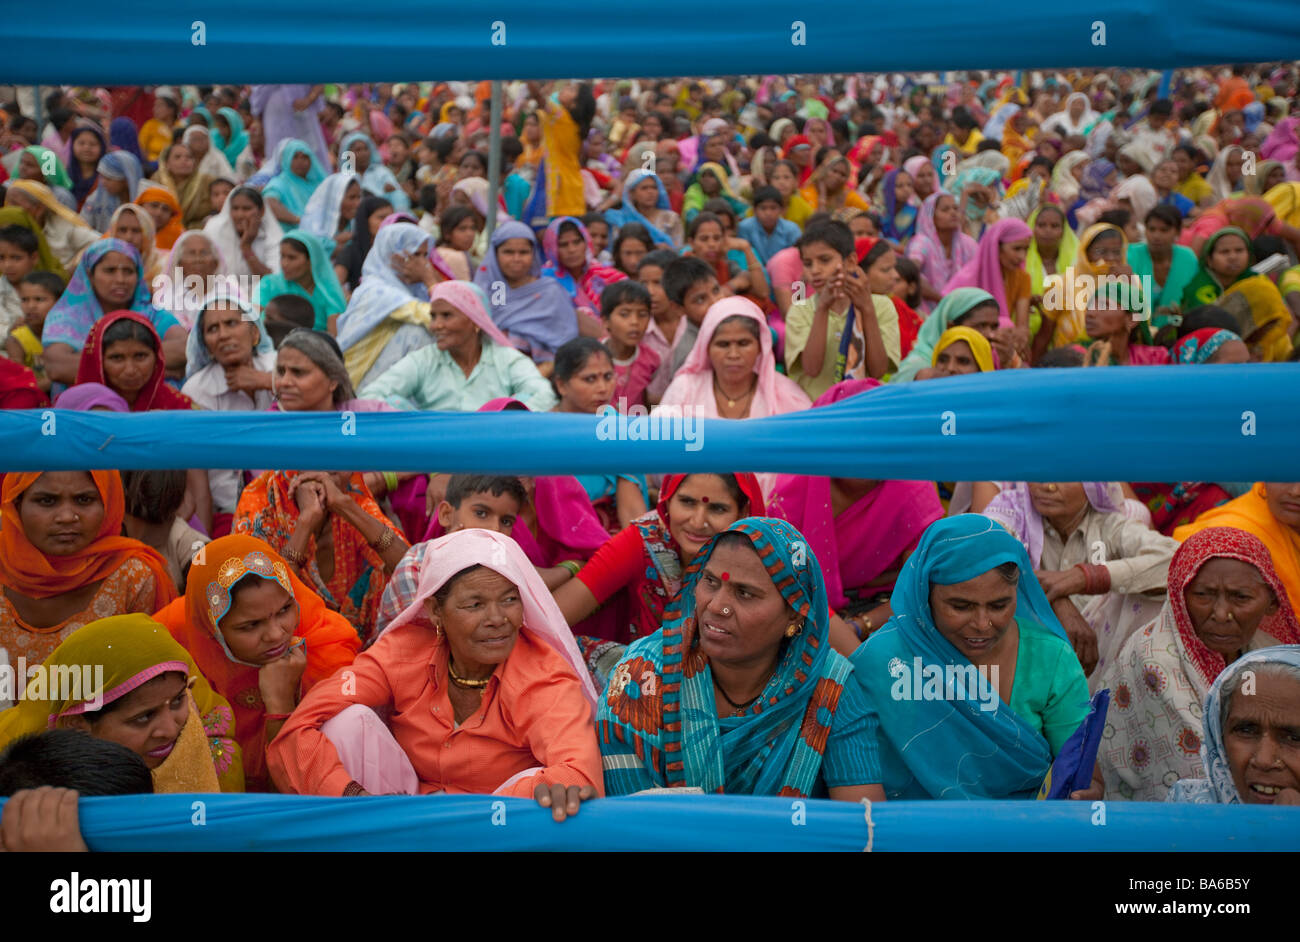 Female Mayawati supporters at a political rally in Palwal Haryana in the lead up to India's Lok Sabha elections - Stock Image